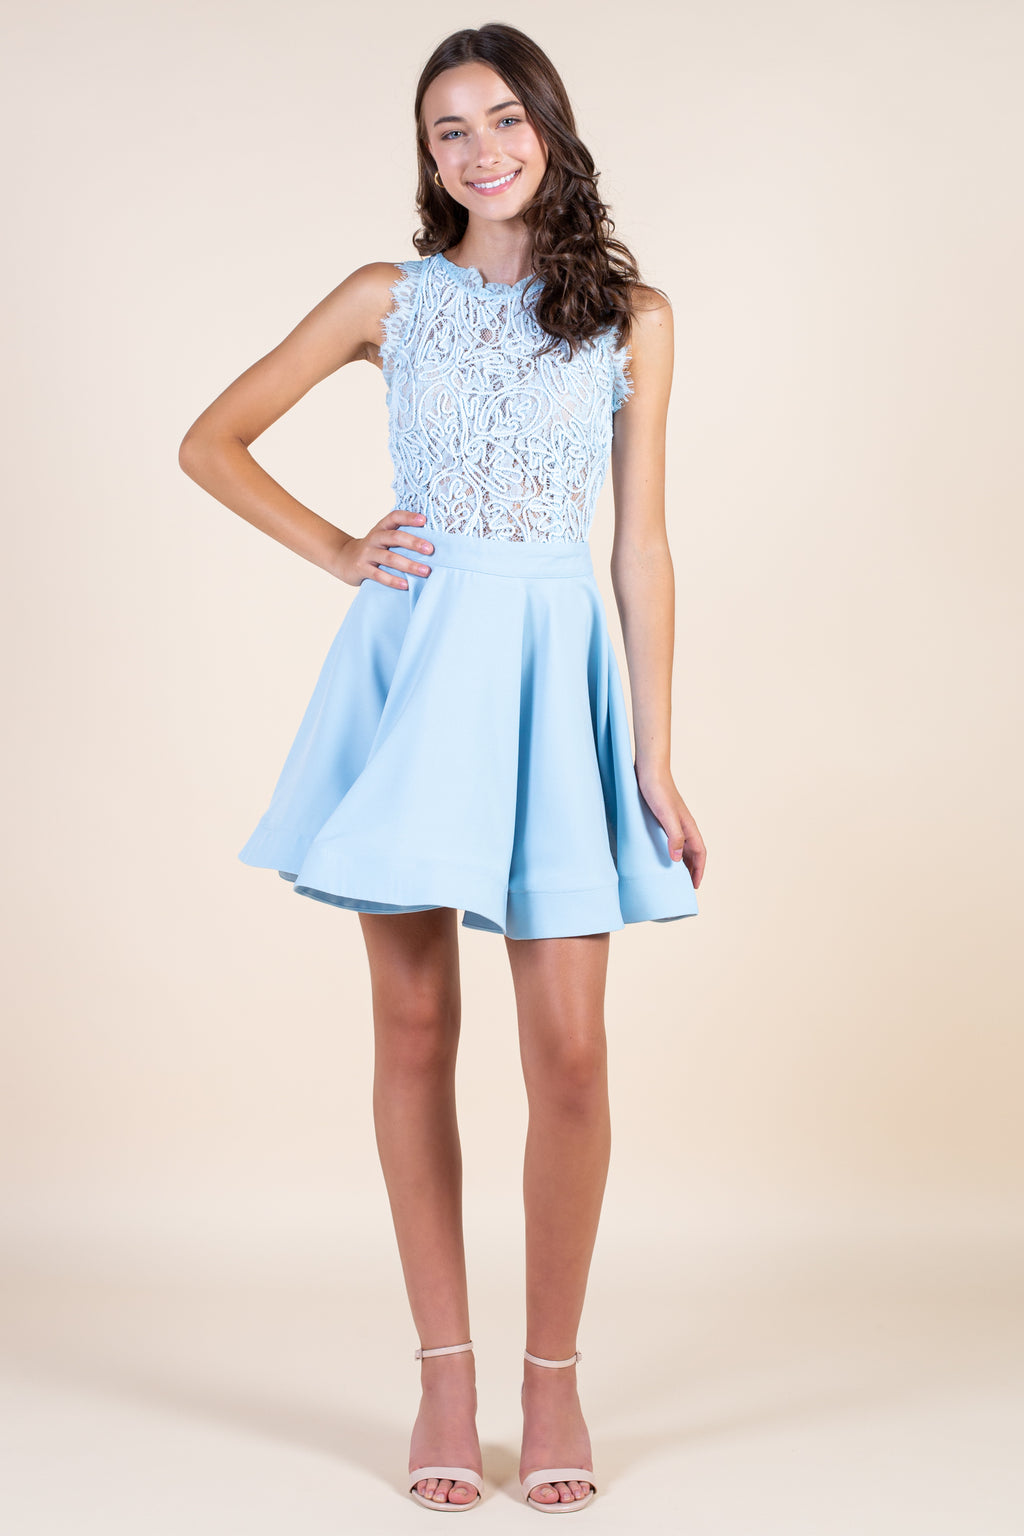 Aislynn Embroidered Lace Bodice A-Line Dress - honey